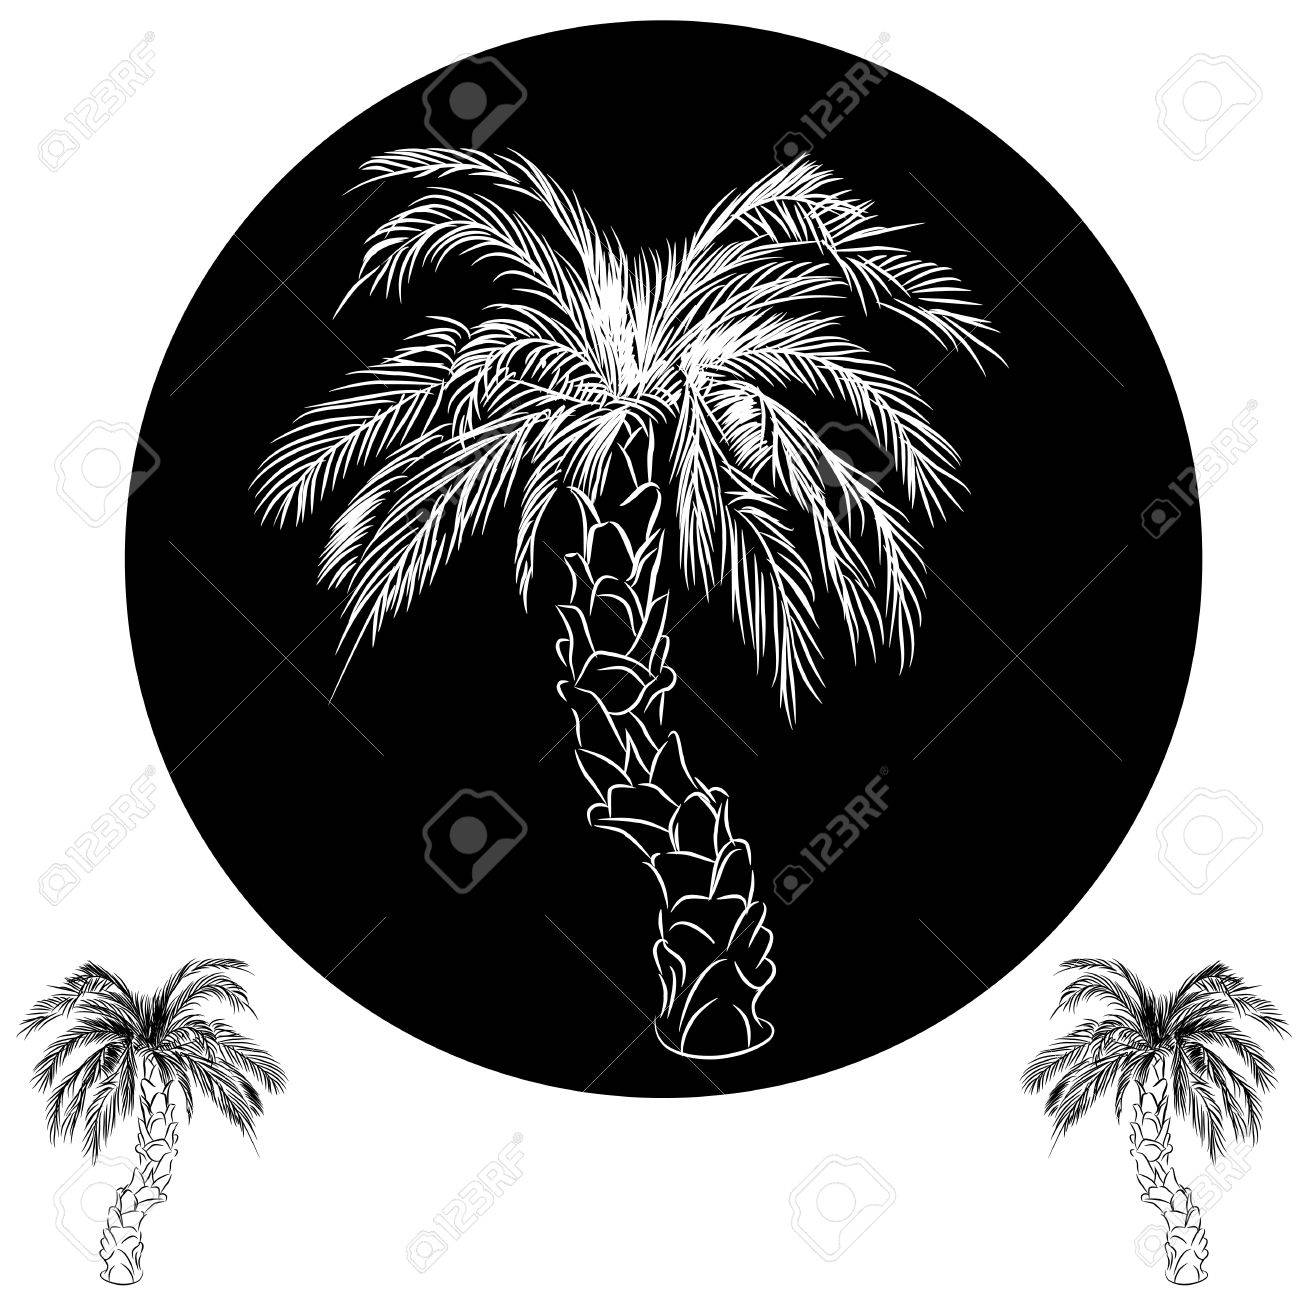 an image of a palm tree drawing royalty free cliparts vectors